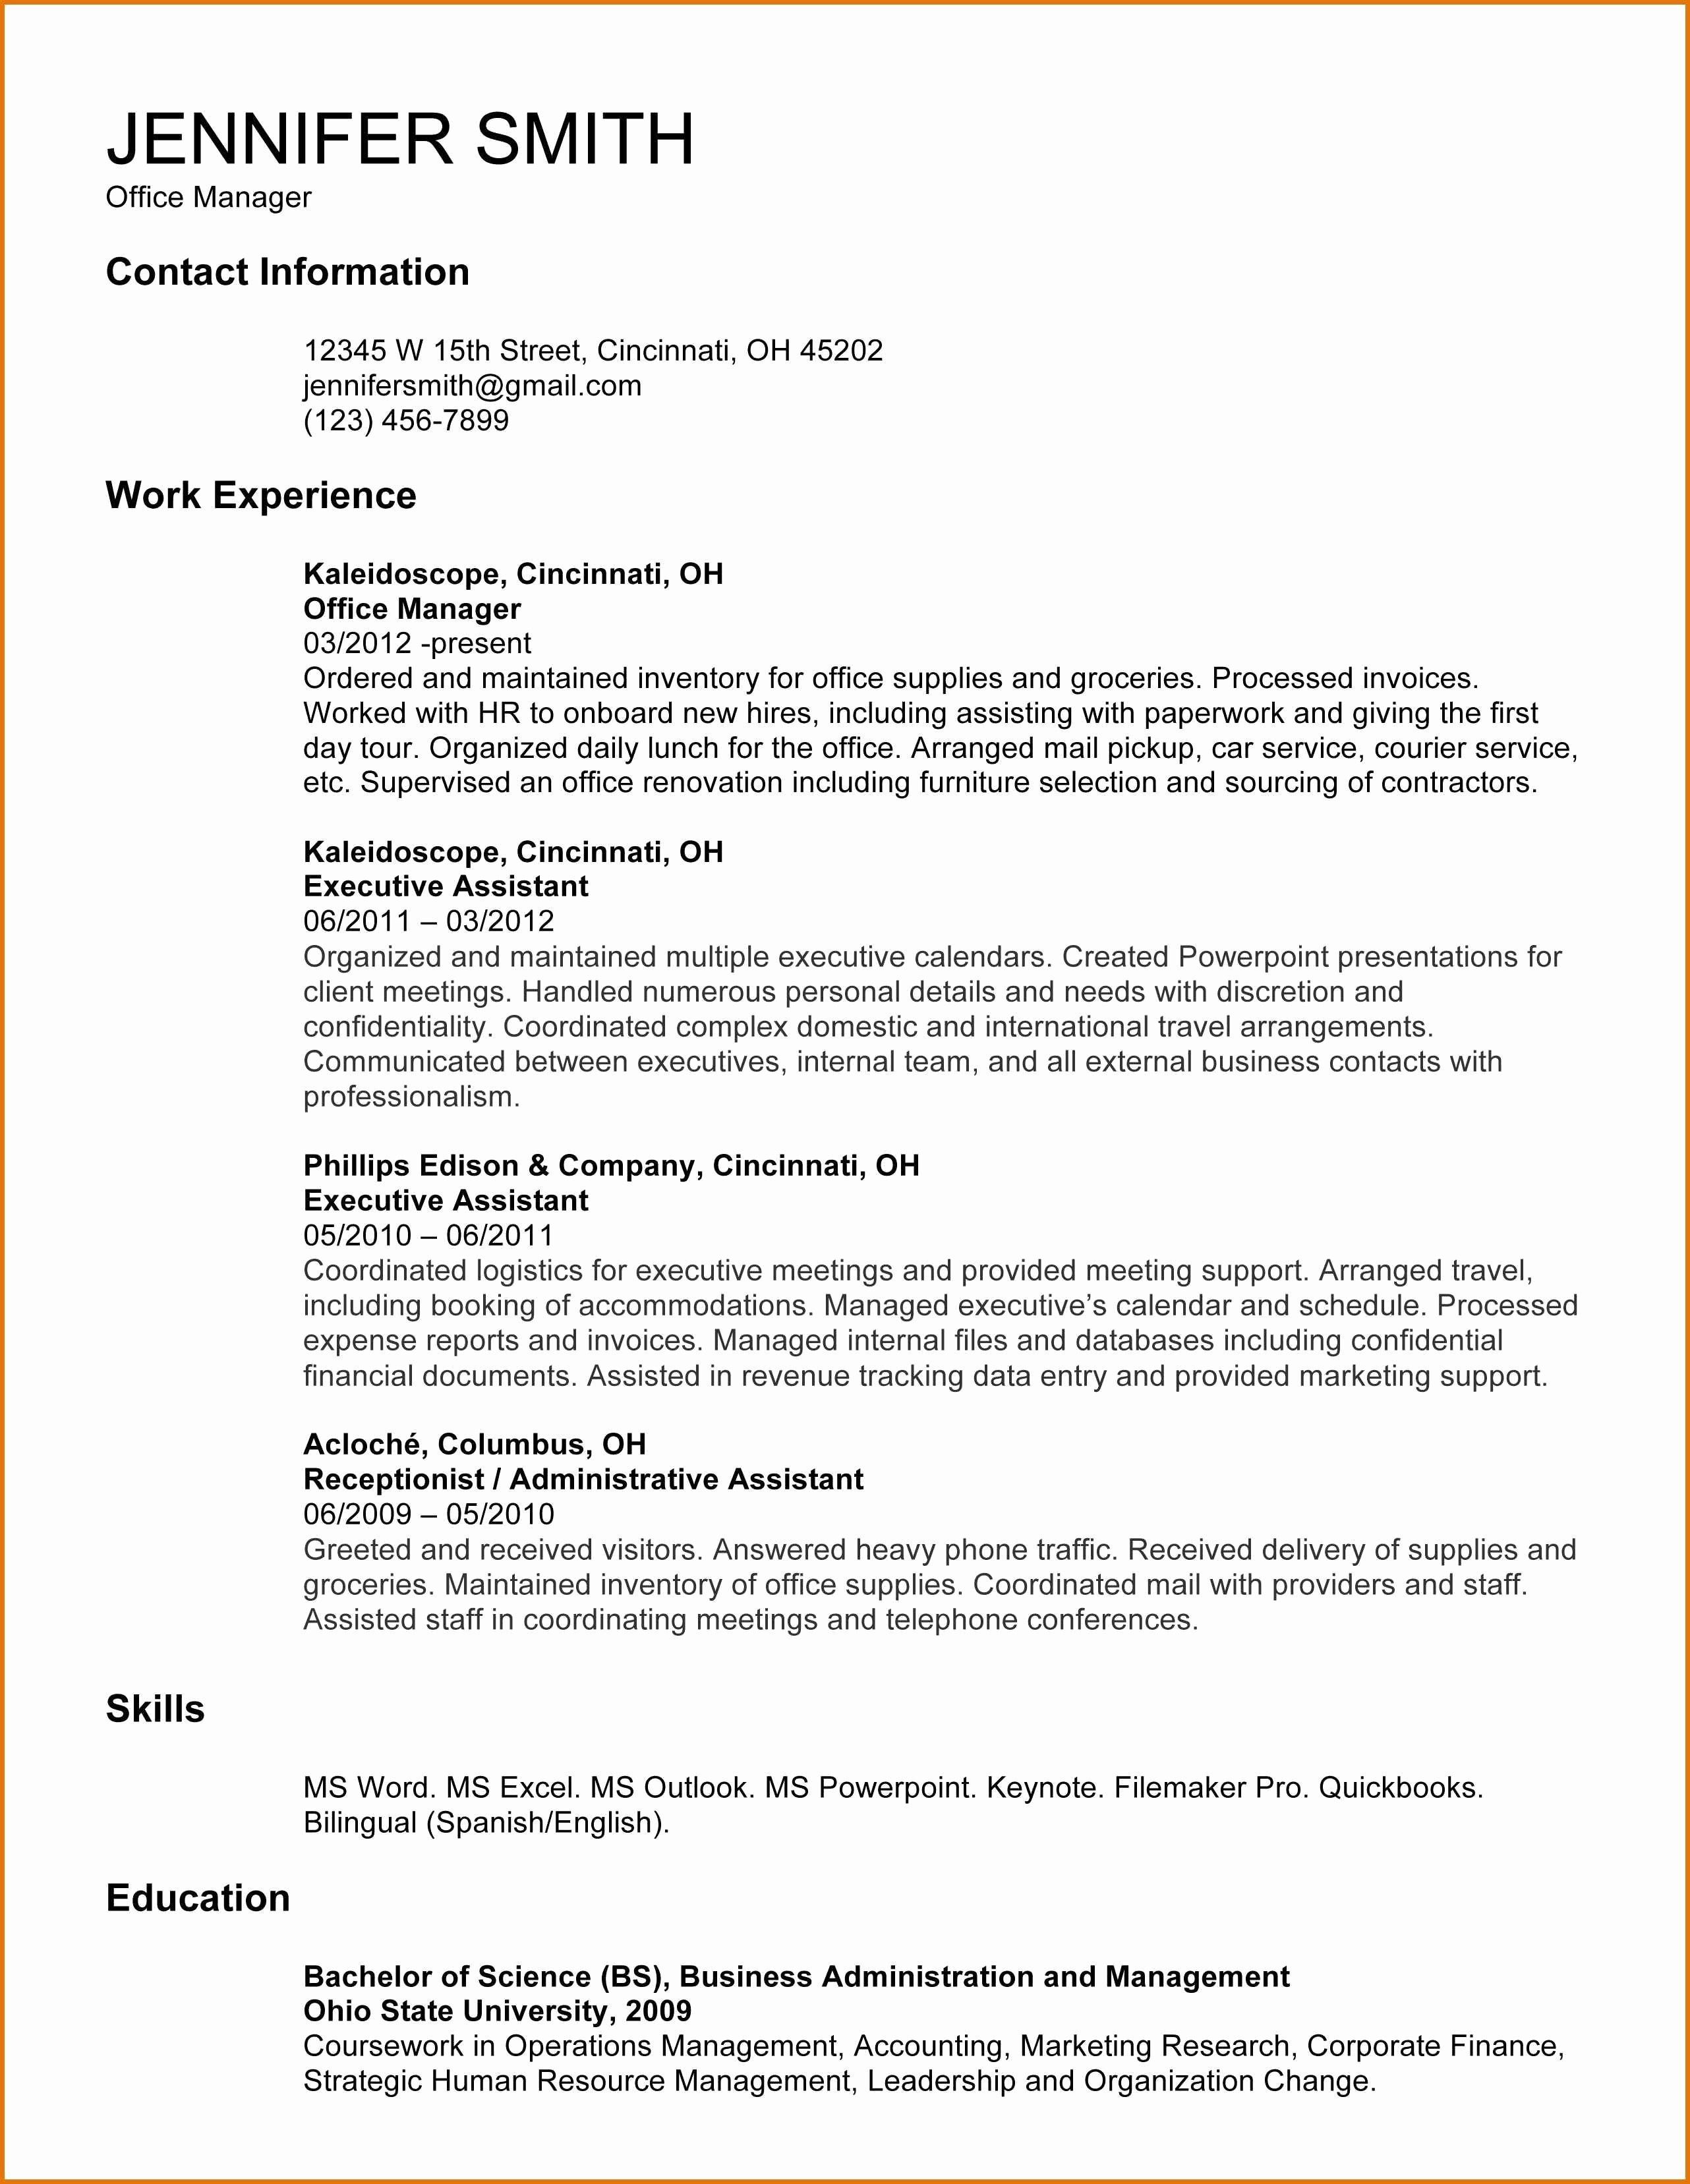 Format For Cover Letter You Can See This New Cover Letter Format For English Portfolio At